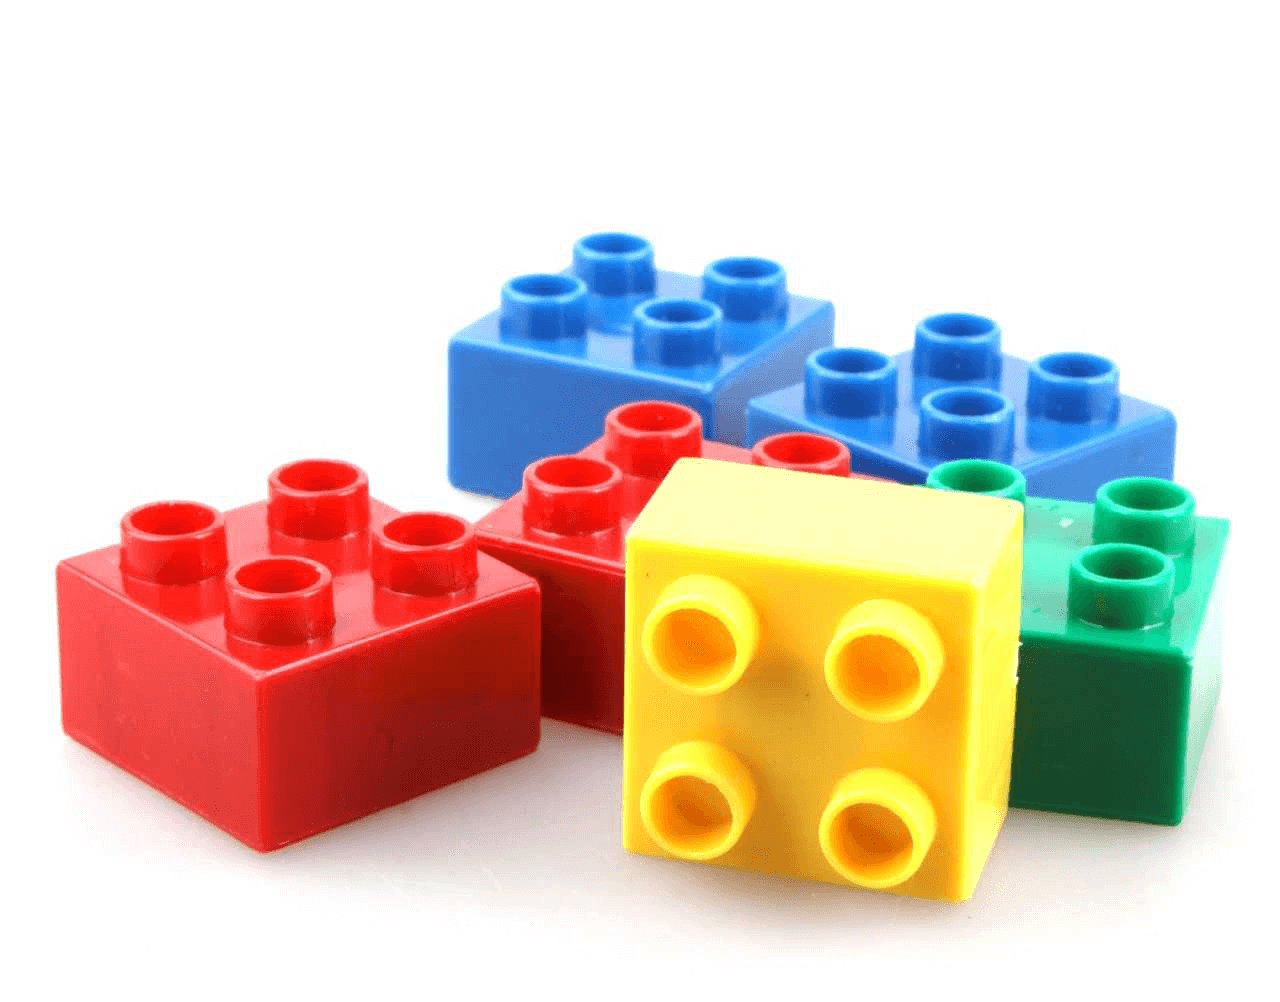 ABS Plastic Molding Manufacturers: What can be Molded using ABS Plastic